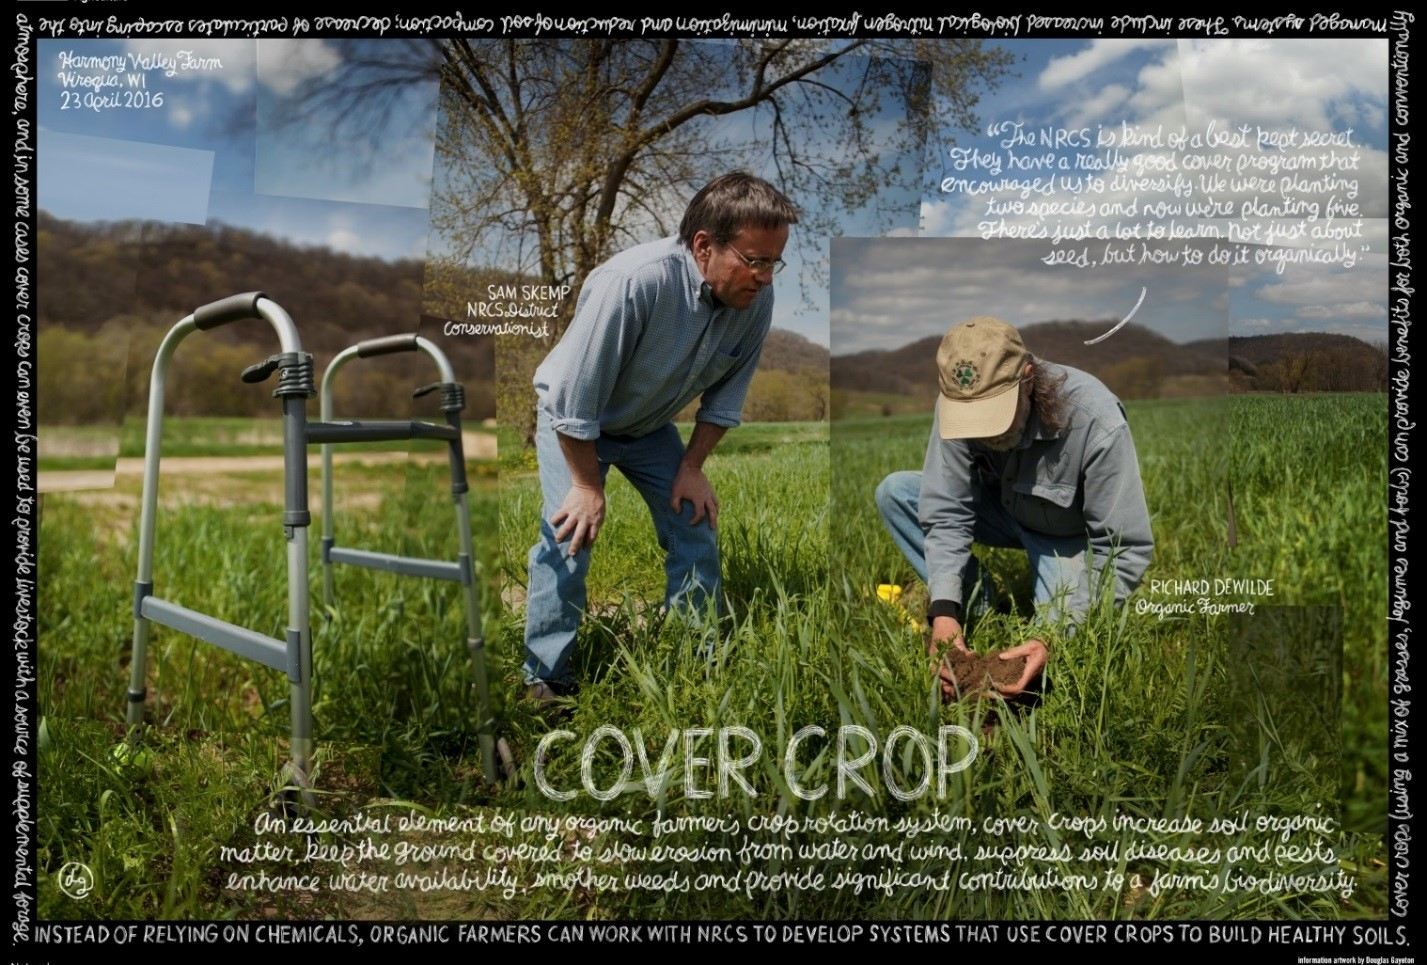 Cover crop photo